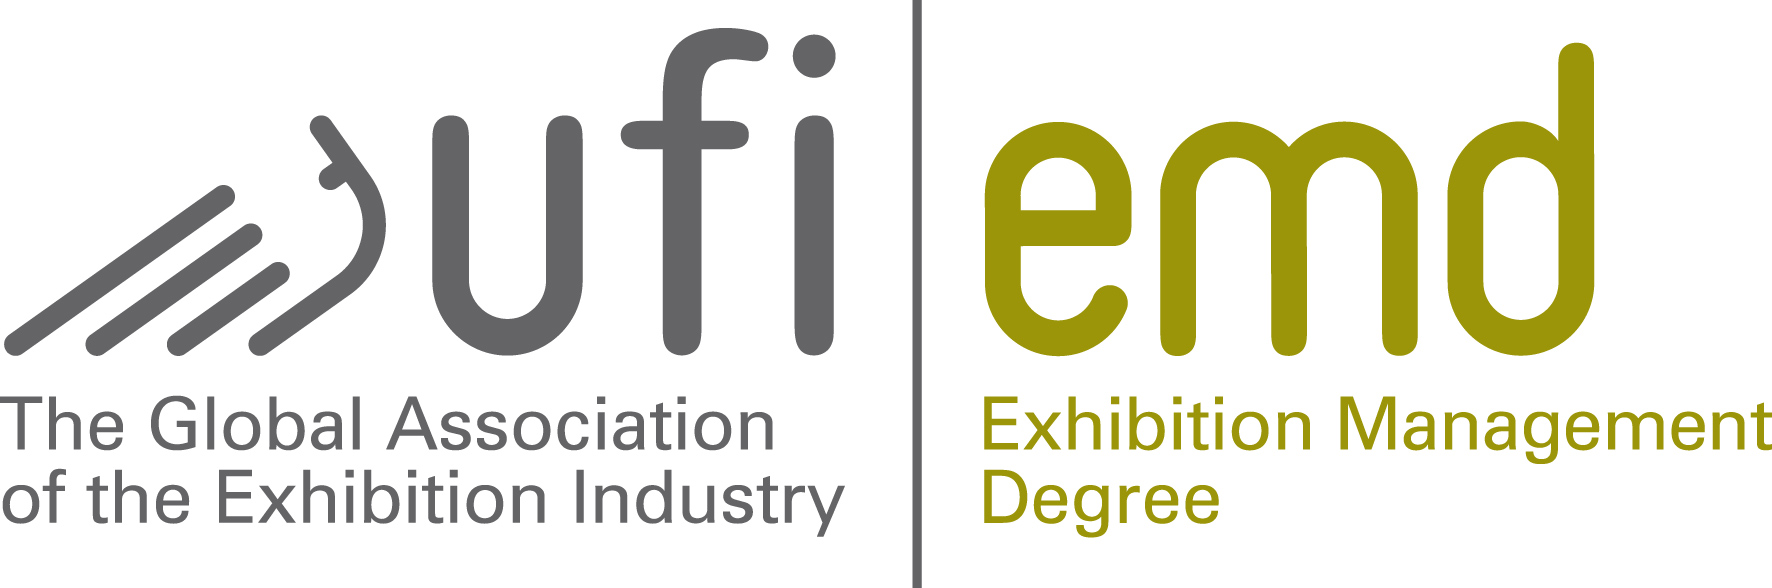 Exhibition Management Degree Ufi The Global Association Of The